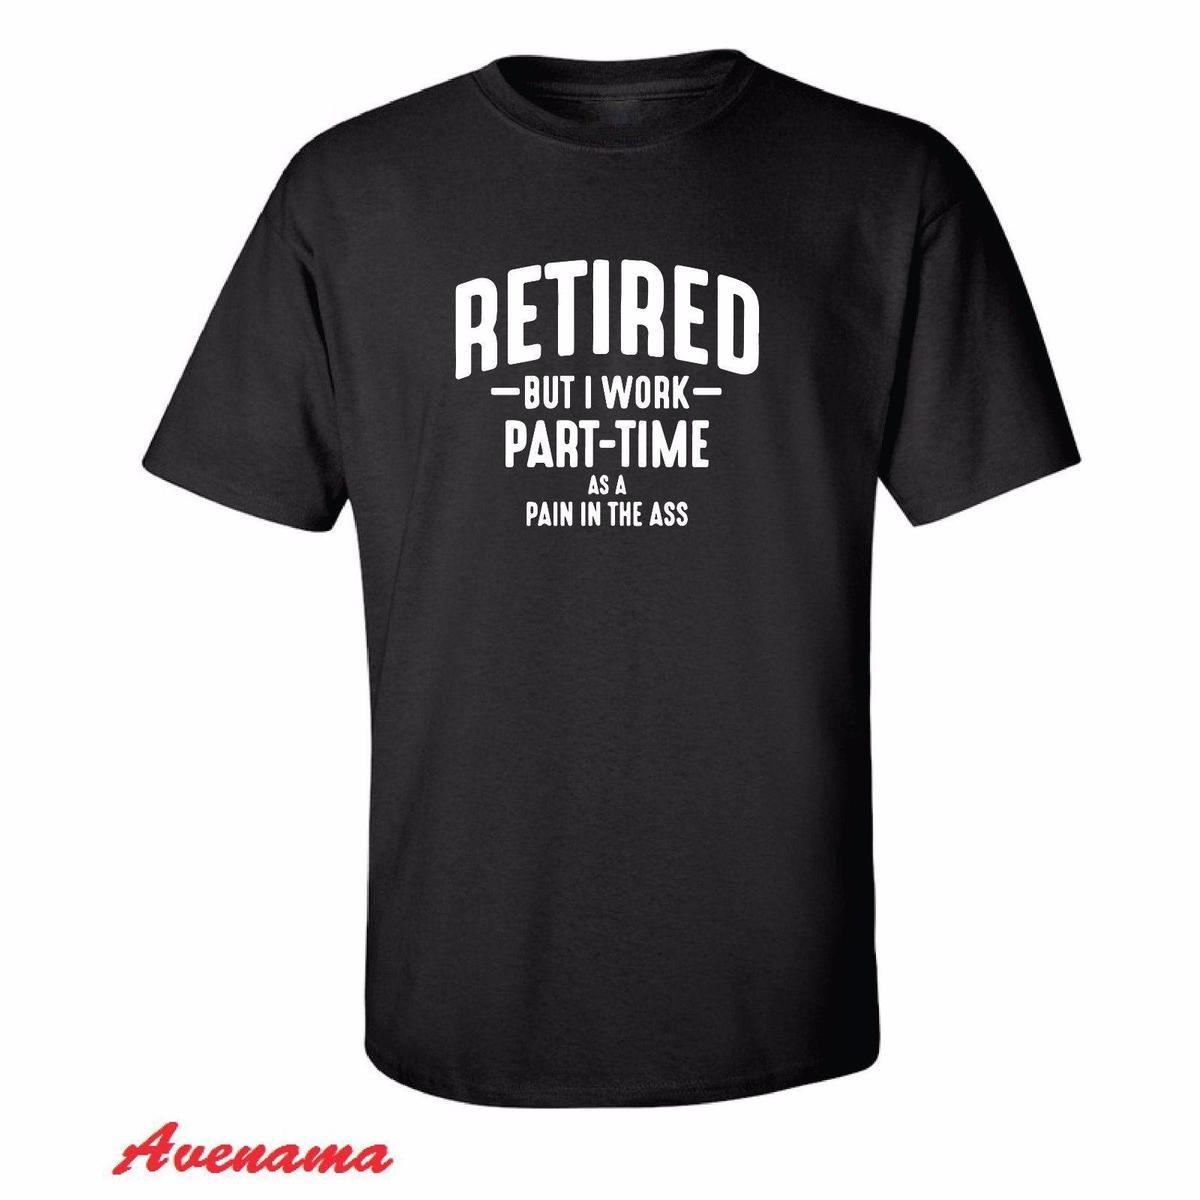 Retired Mens Funny T Shirt Retirement Birthday Gift For Him Dad Grandad As Tee Shirts Awesome Men From Godbless006 1258